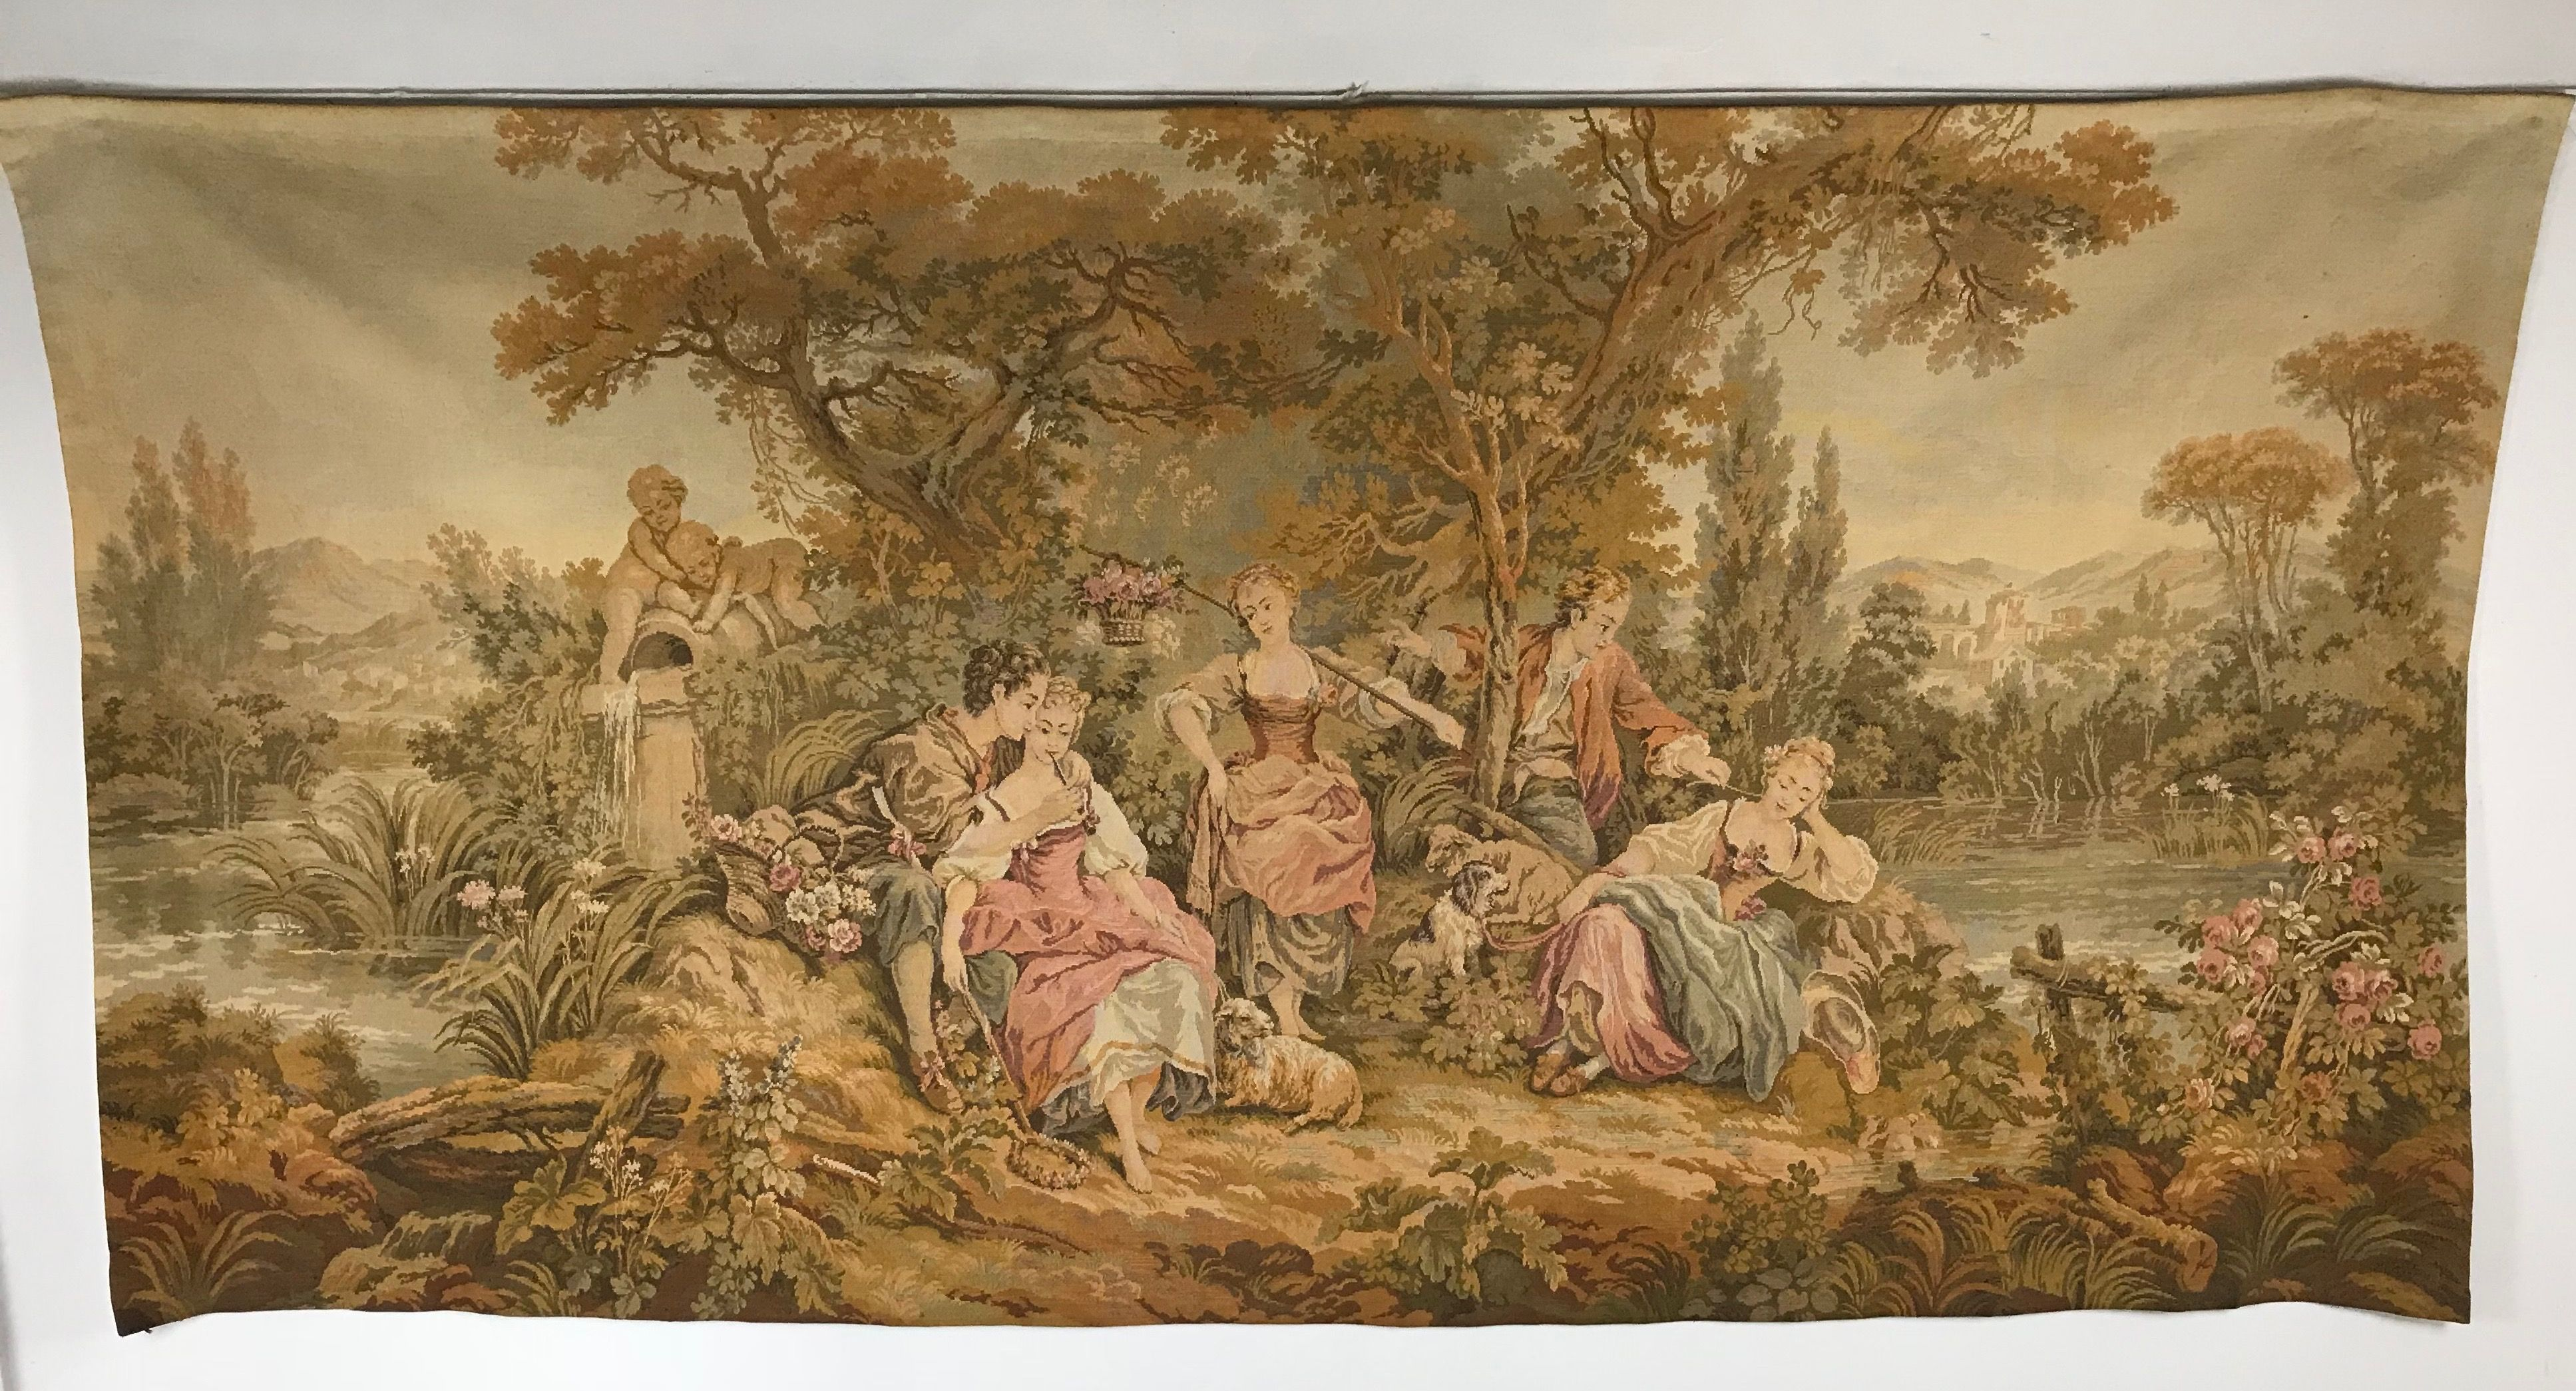 Teppiche Verkaufen Aachen French Jacquard Gobelin Tapestry Having Courting Scene Of Well